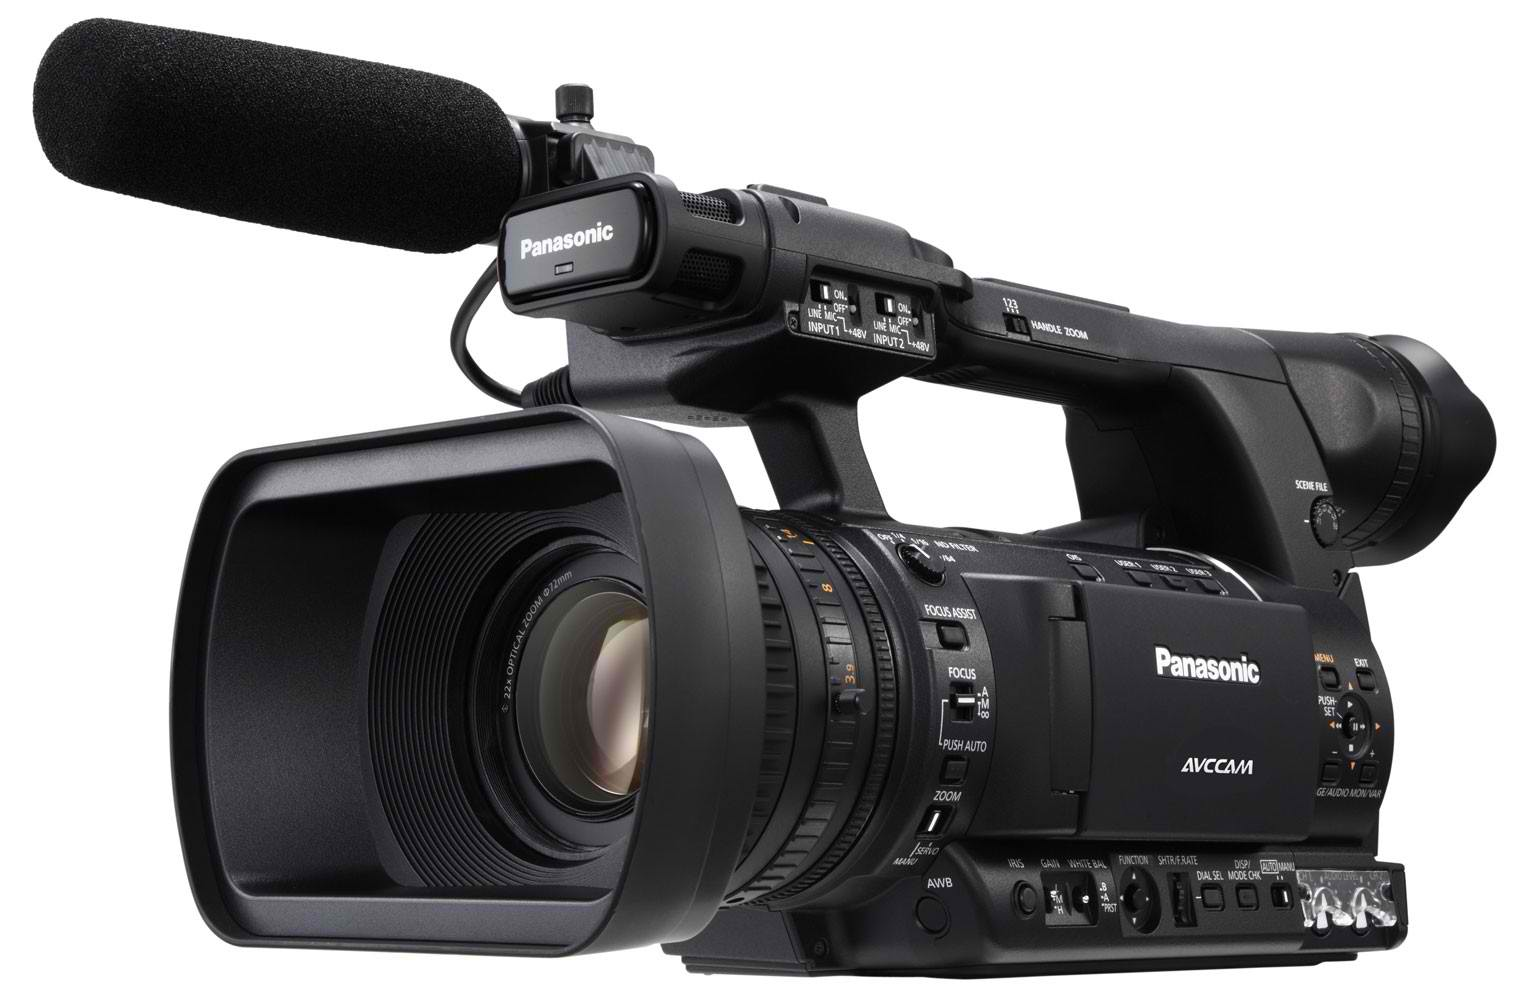 Panasonic digital camera HD